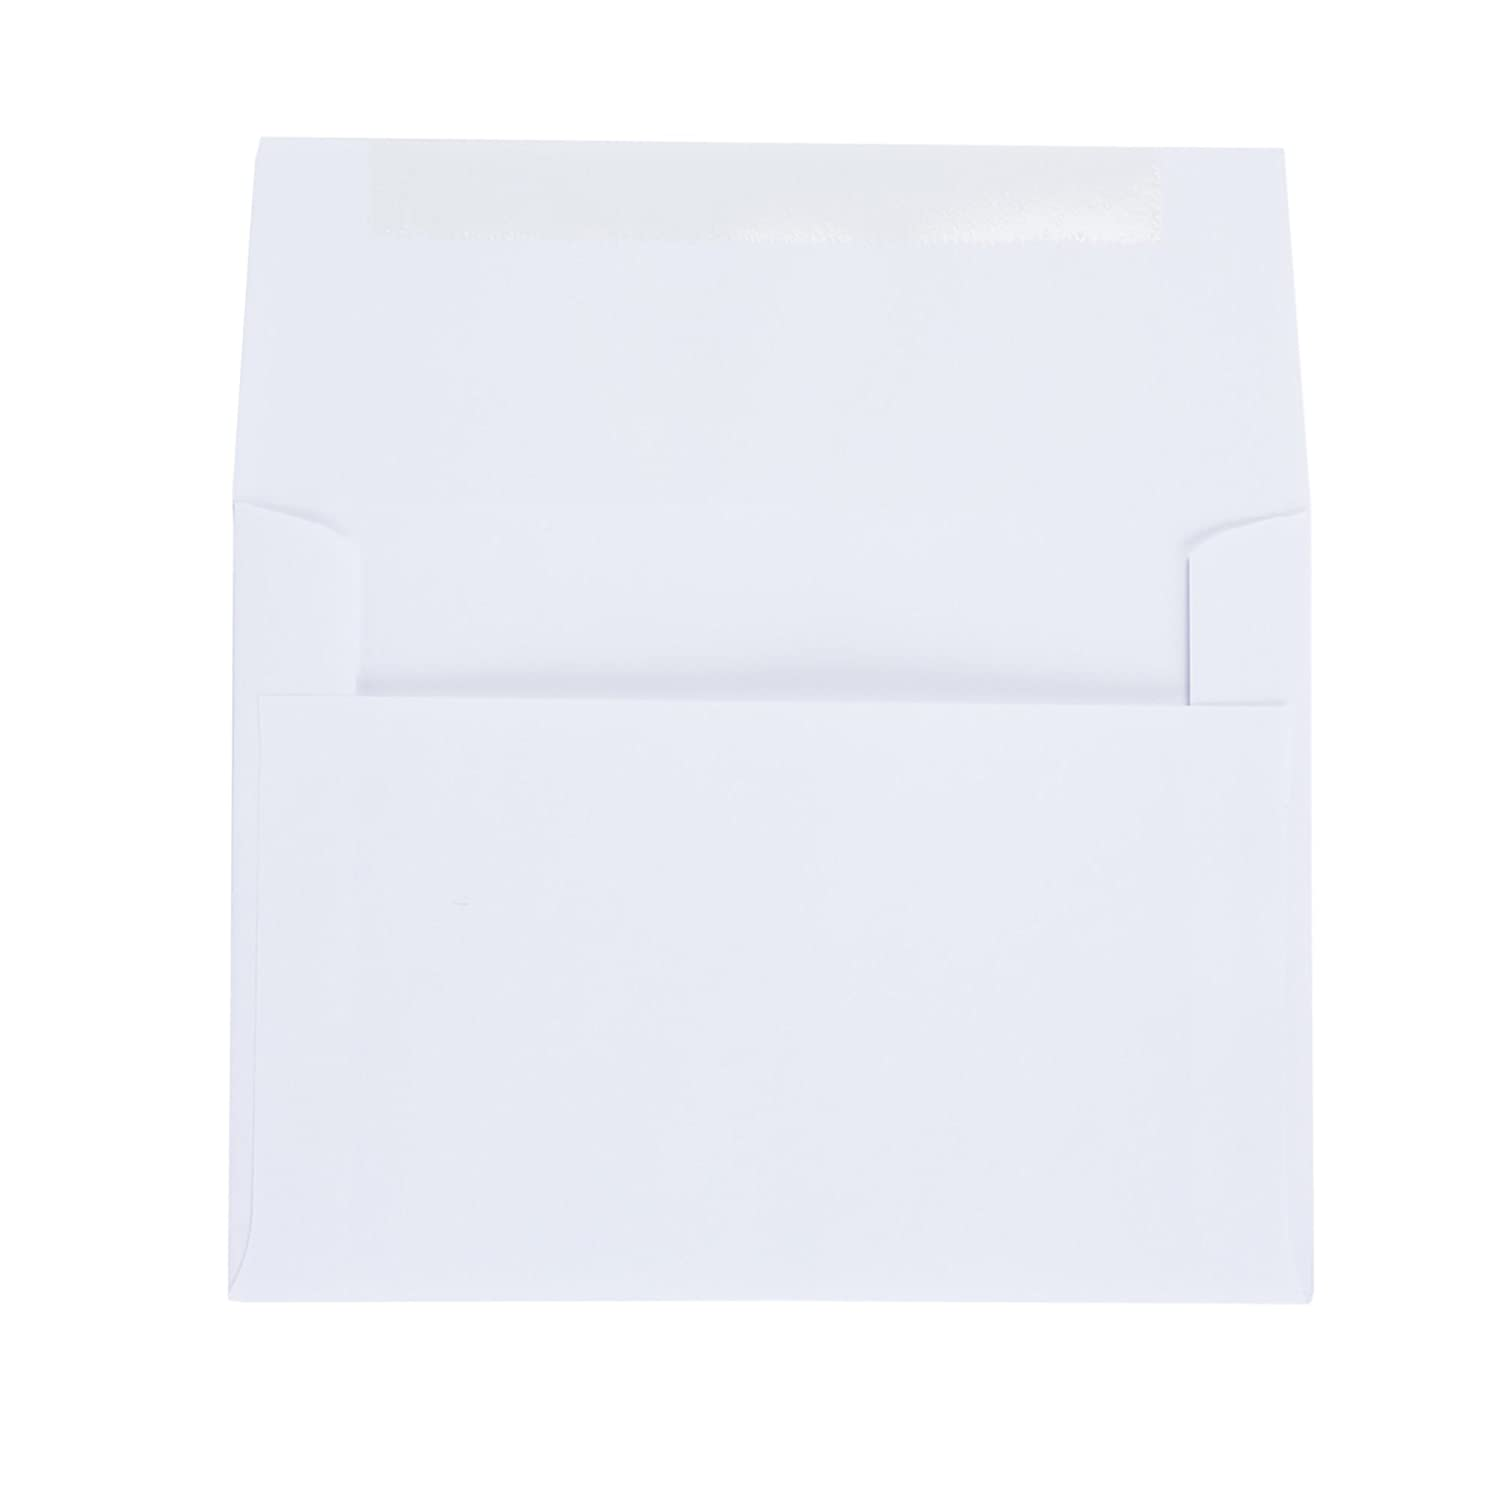 Fresh how to write birthday card images eccleshallfc what to write birthday card envelope image collections free bookmarktalkfo Images